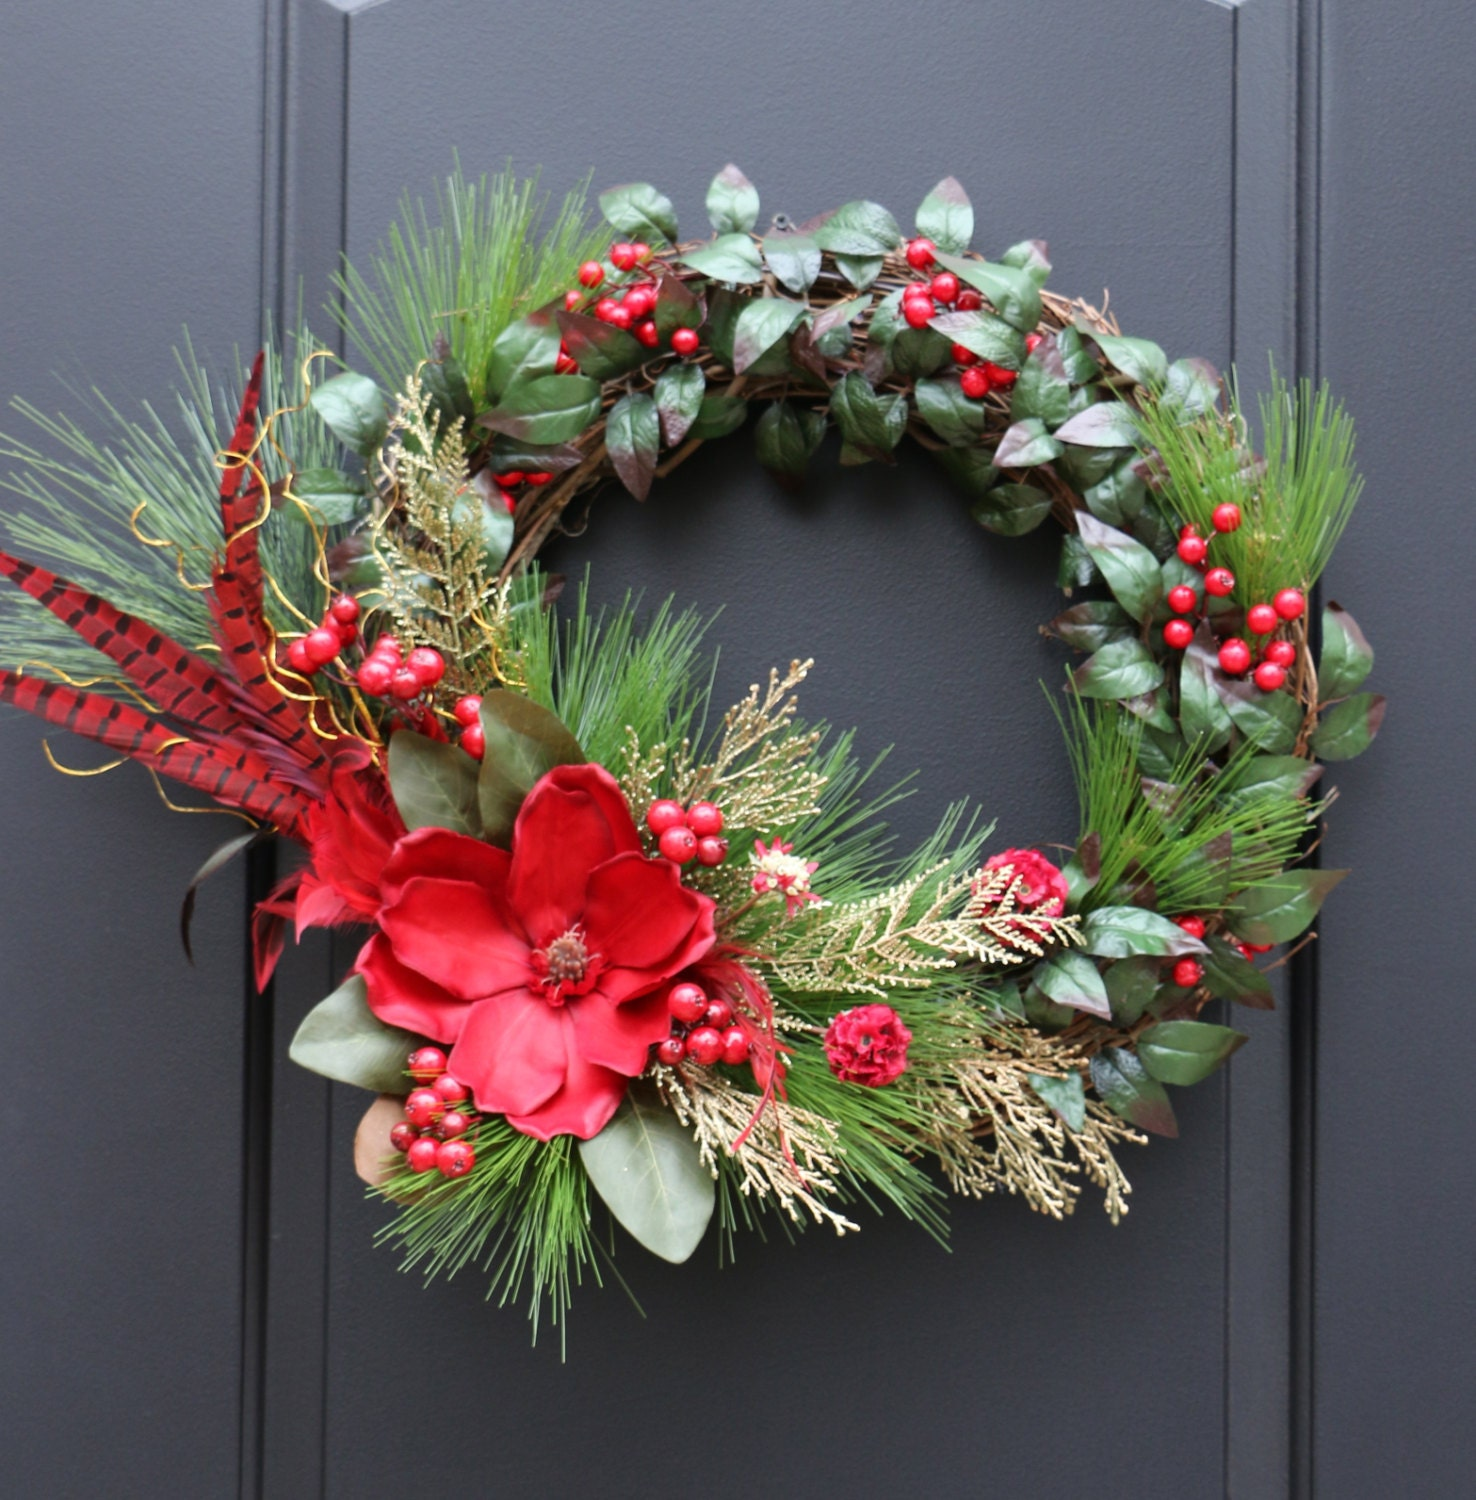 Magnolia, feathers and red berries Christmas door wreath, Holiday wreath